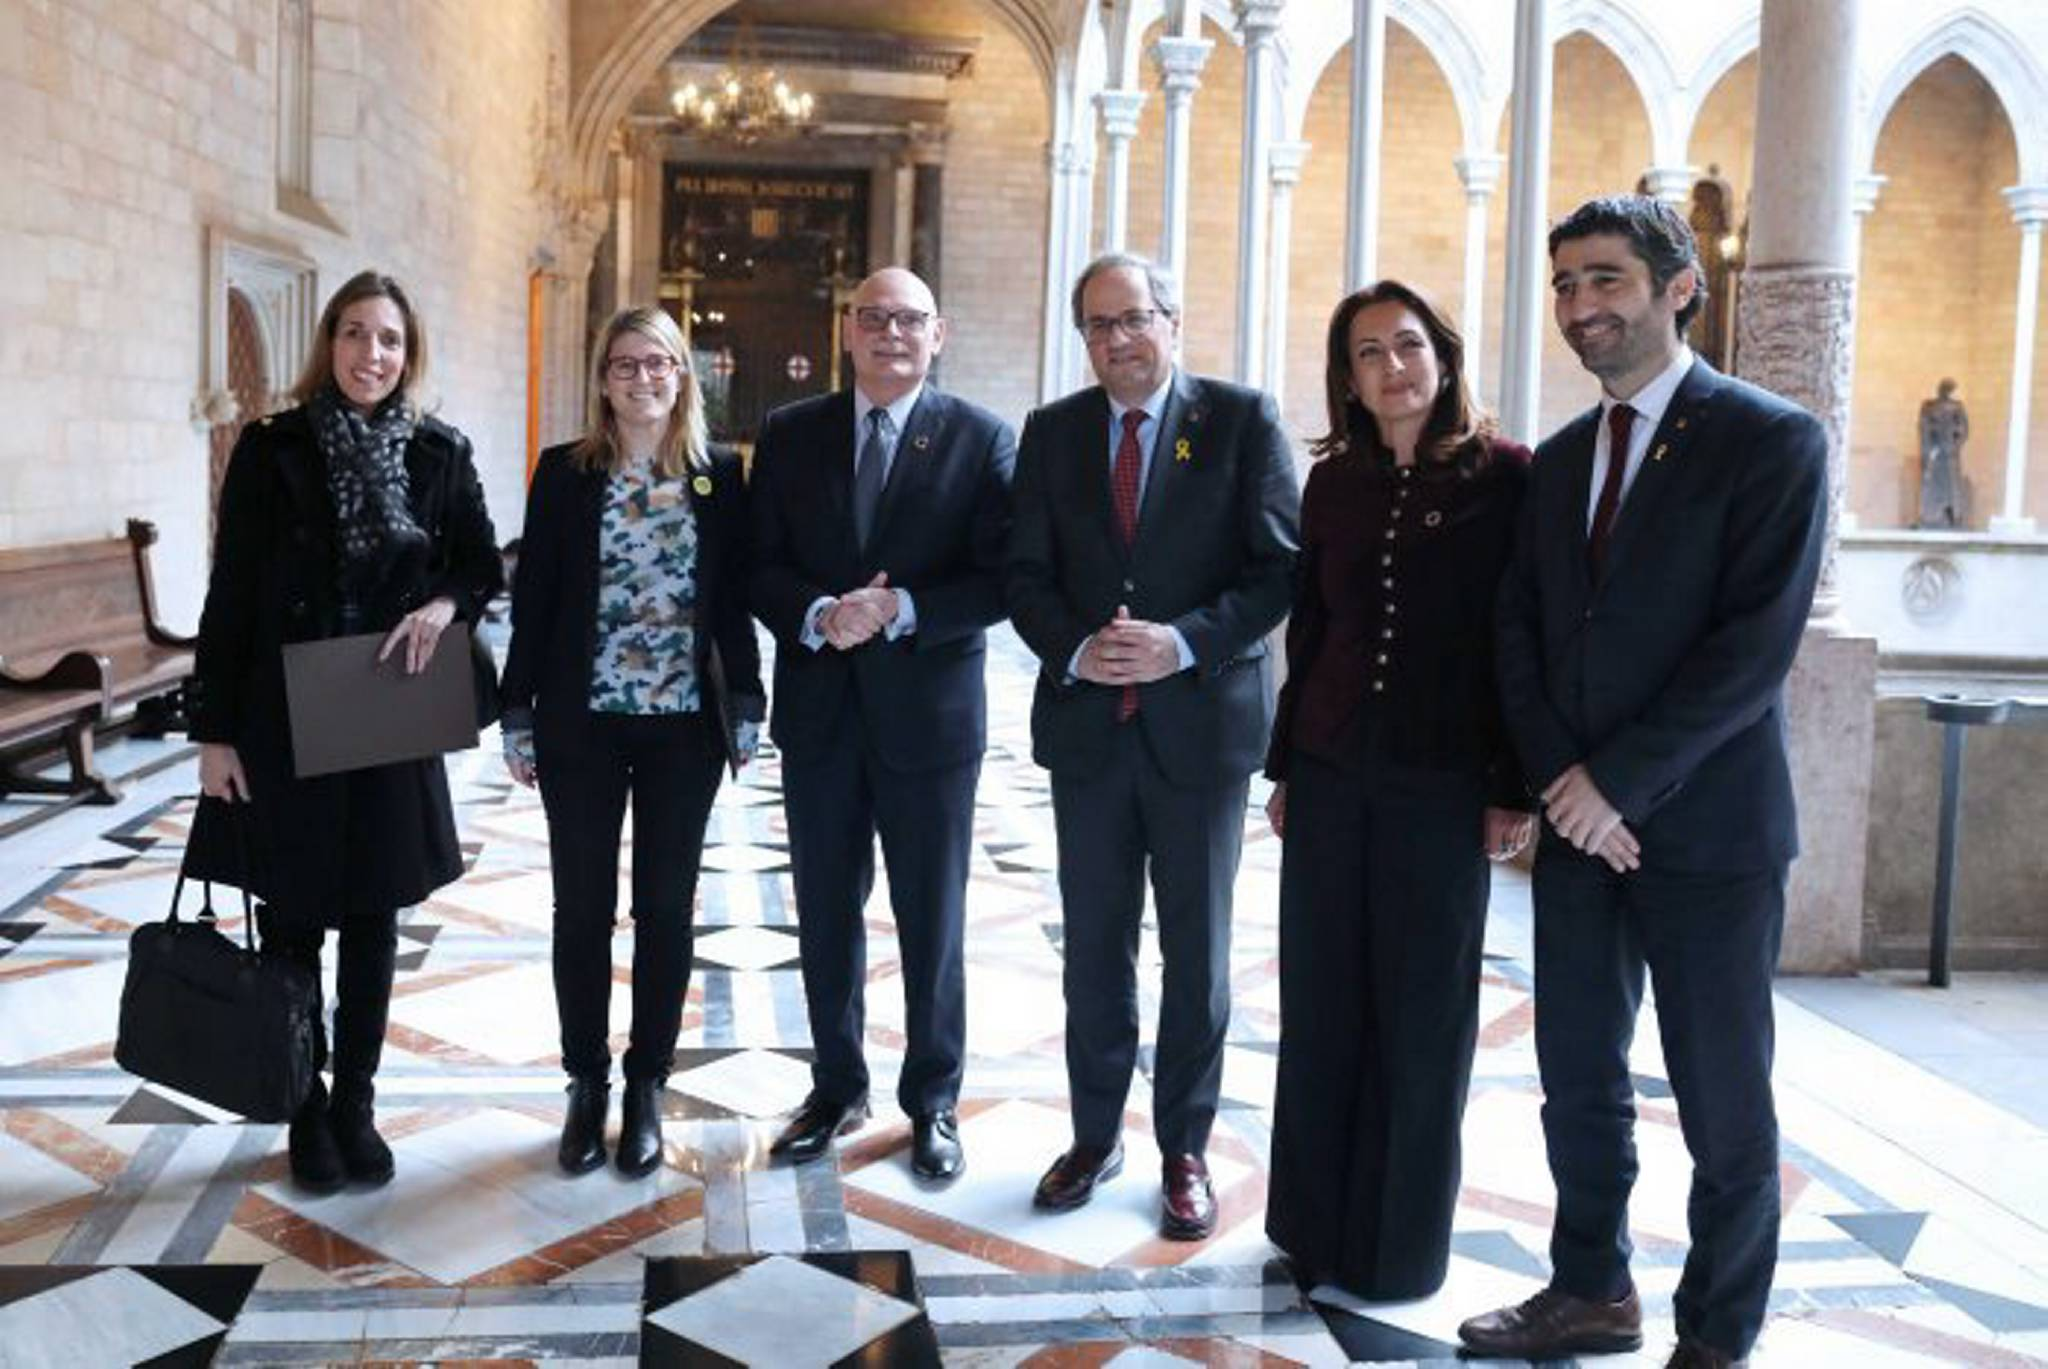 President Torra and ministers Artadi, Chacón and Puigneró with GSMA's top managers